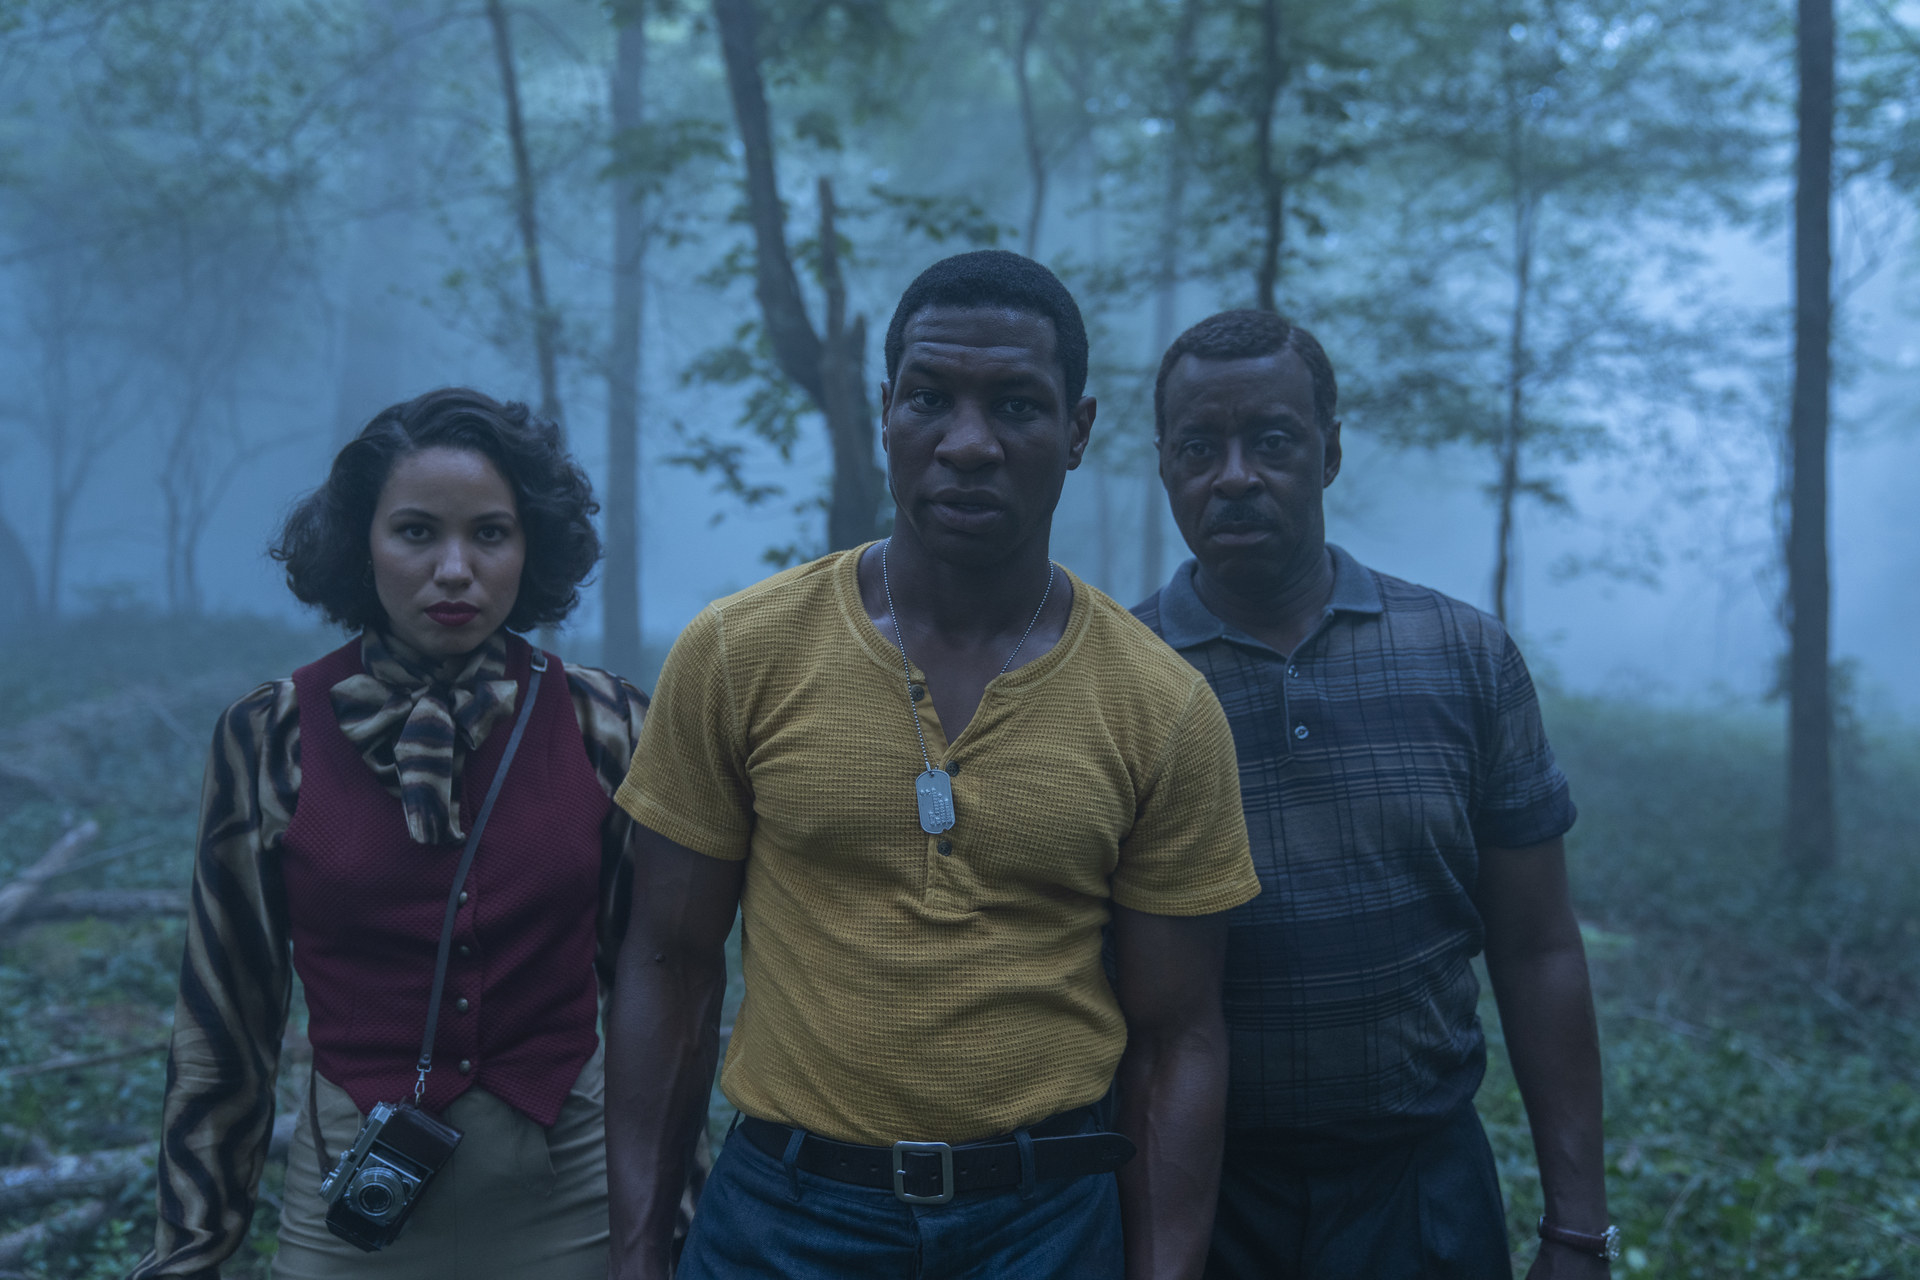 Atticus, Leti, and George walking through a foggy forest